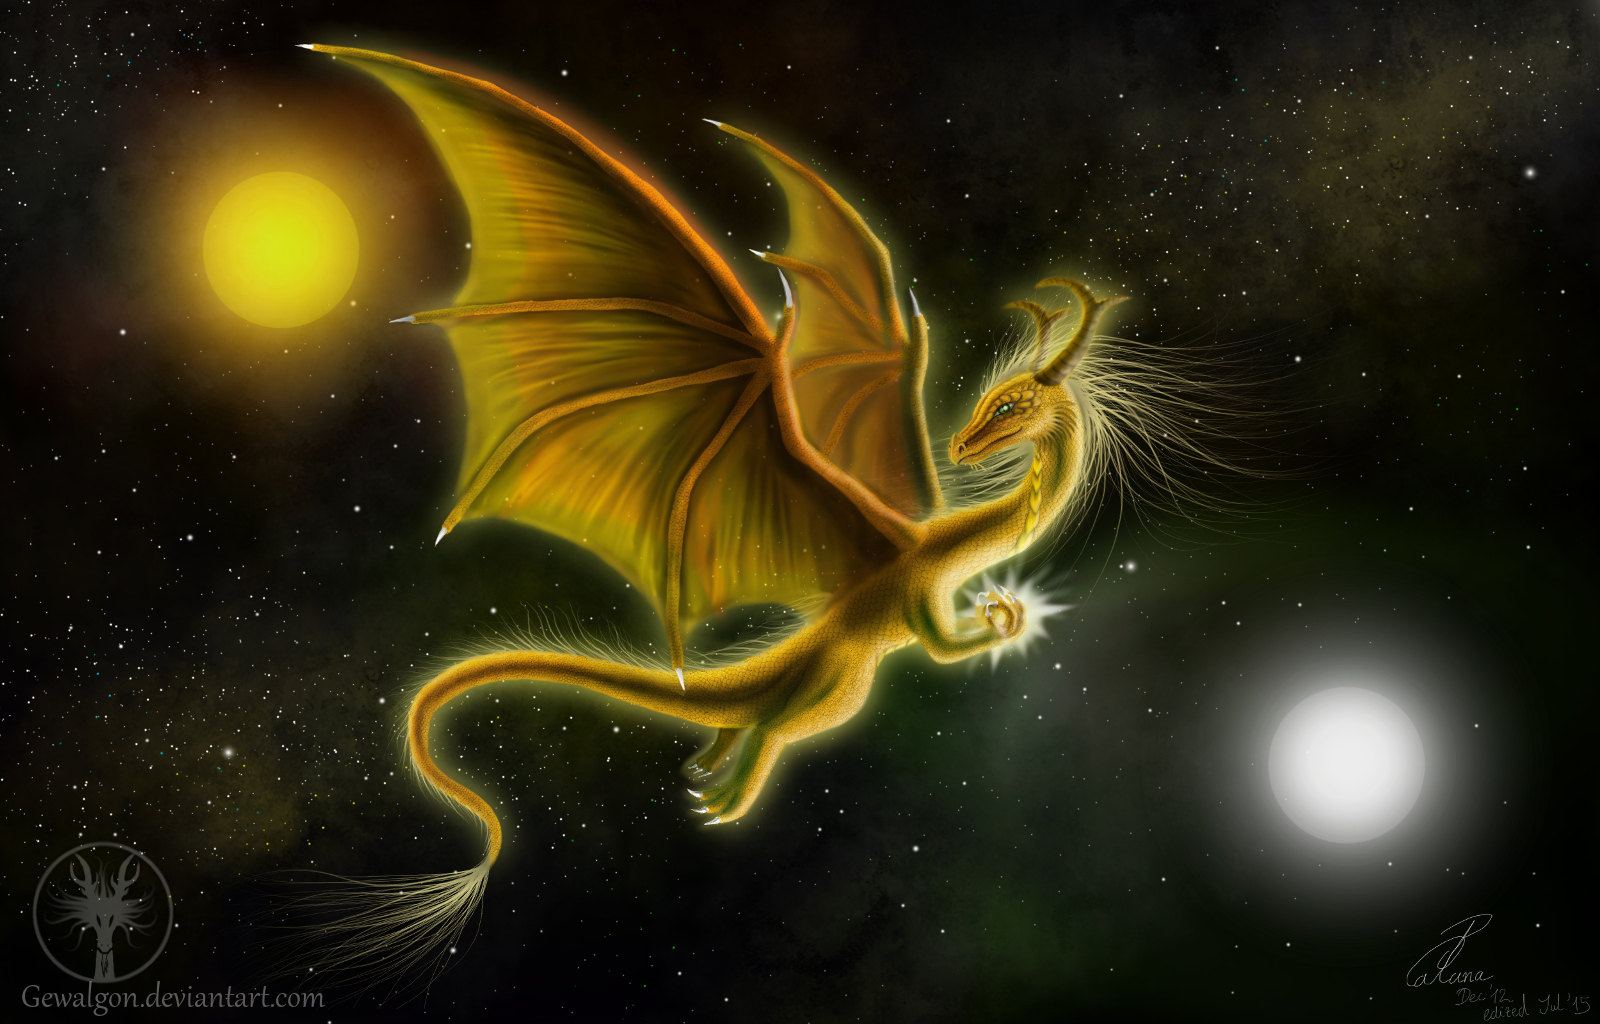 Golden Dragon of the Universe by Gewalgon